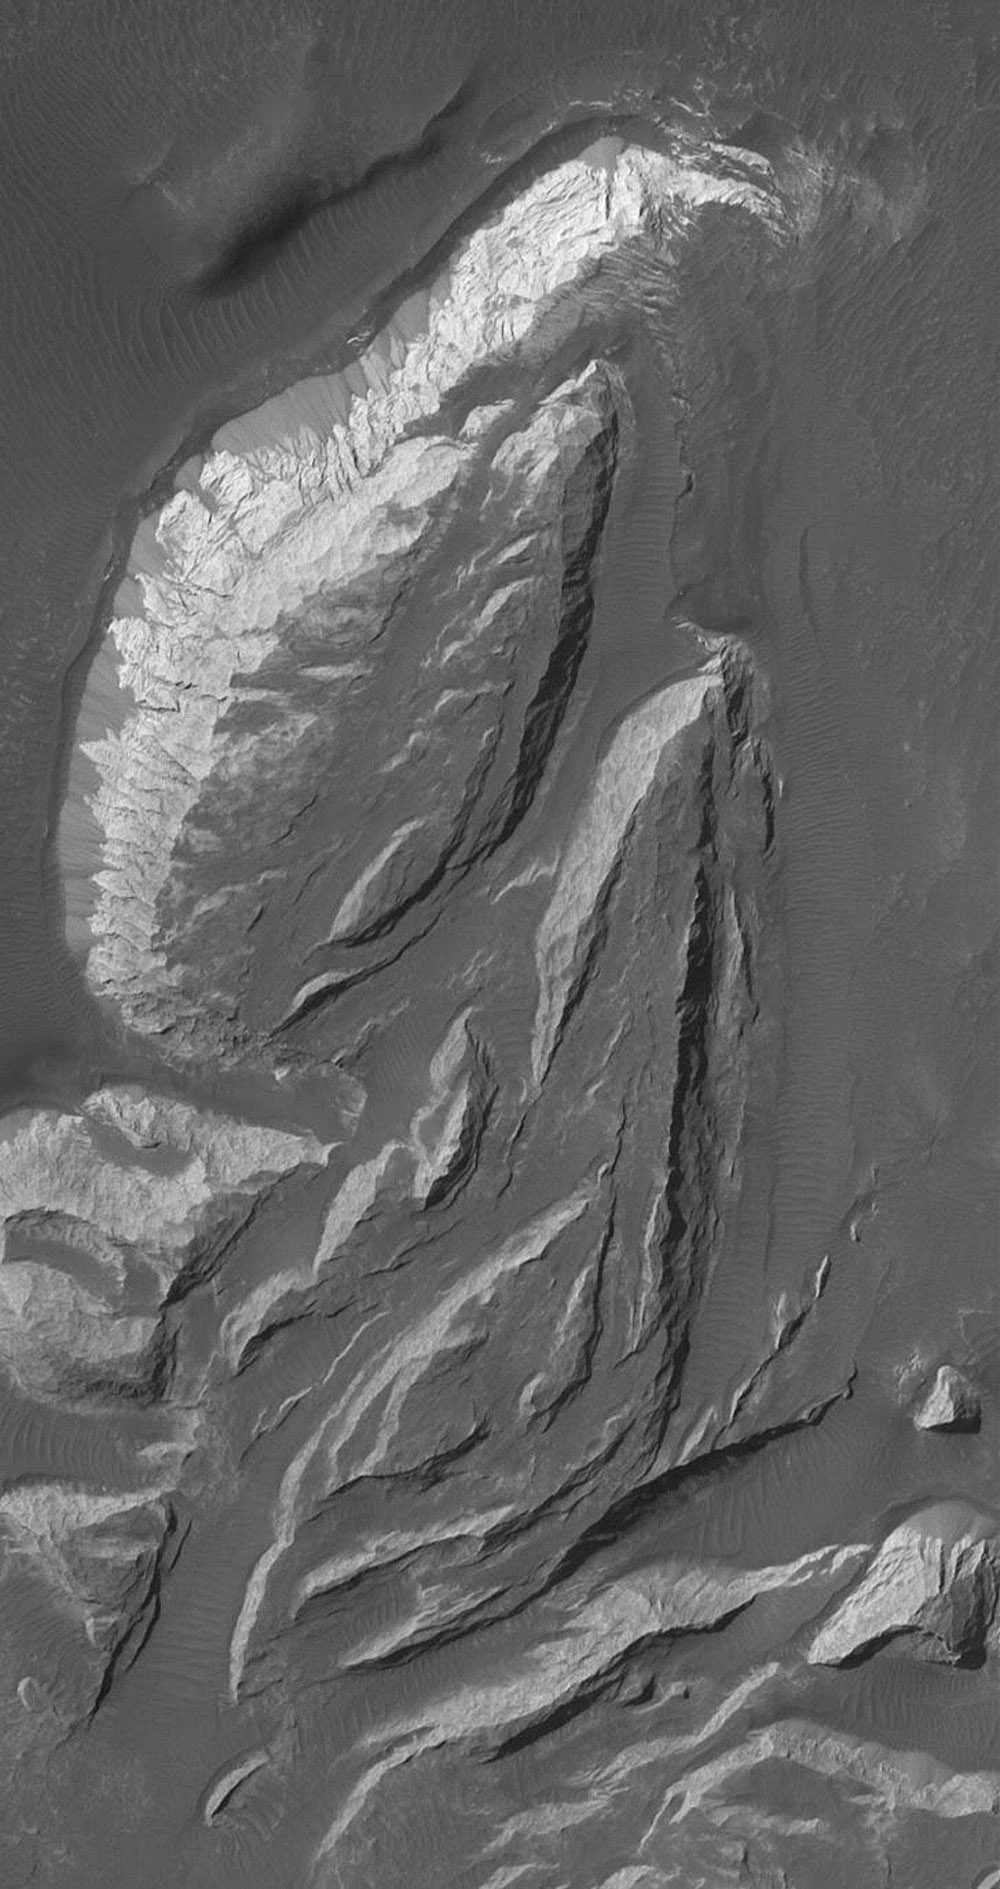 NASA's Mars Global Surveyor shows light-toned, sedimentary rock outcrops in the Aureum Chaos region of Mars. On the brightest and steepest slope in this scene, dry talus shed from the outcrop has formed a series of dark fans along its base.